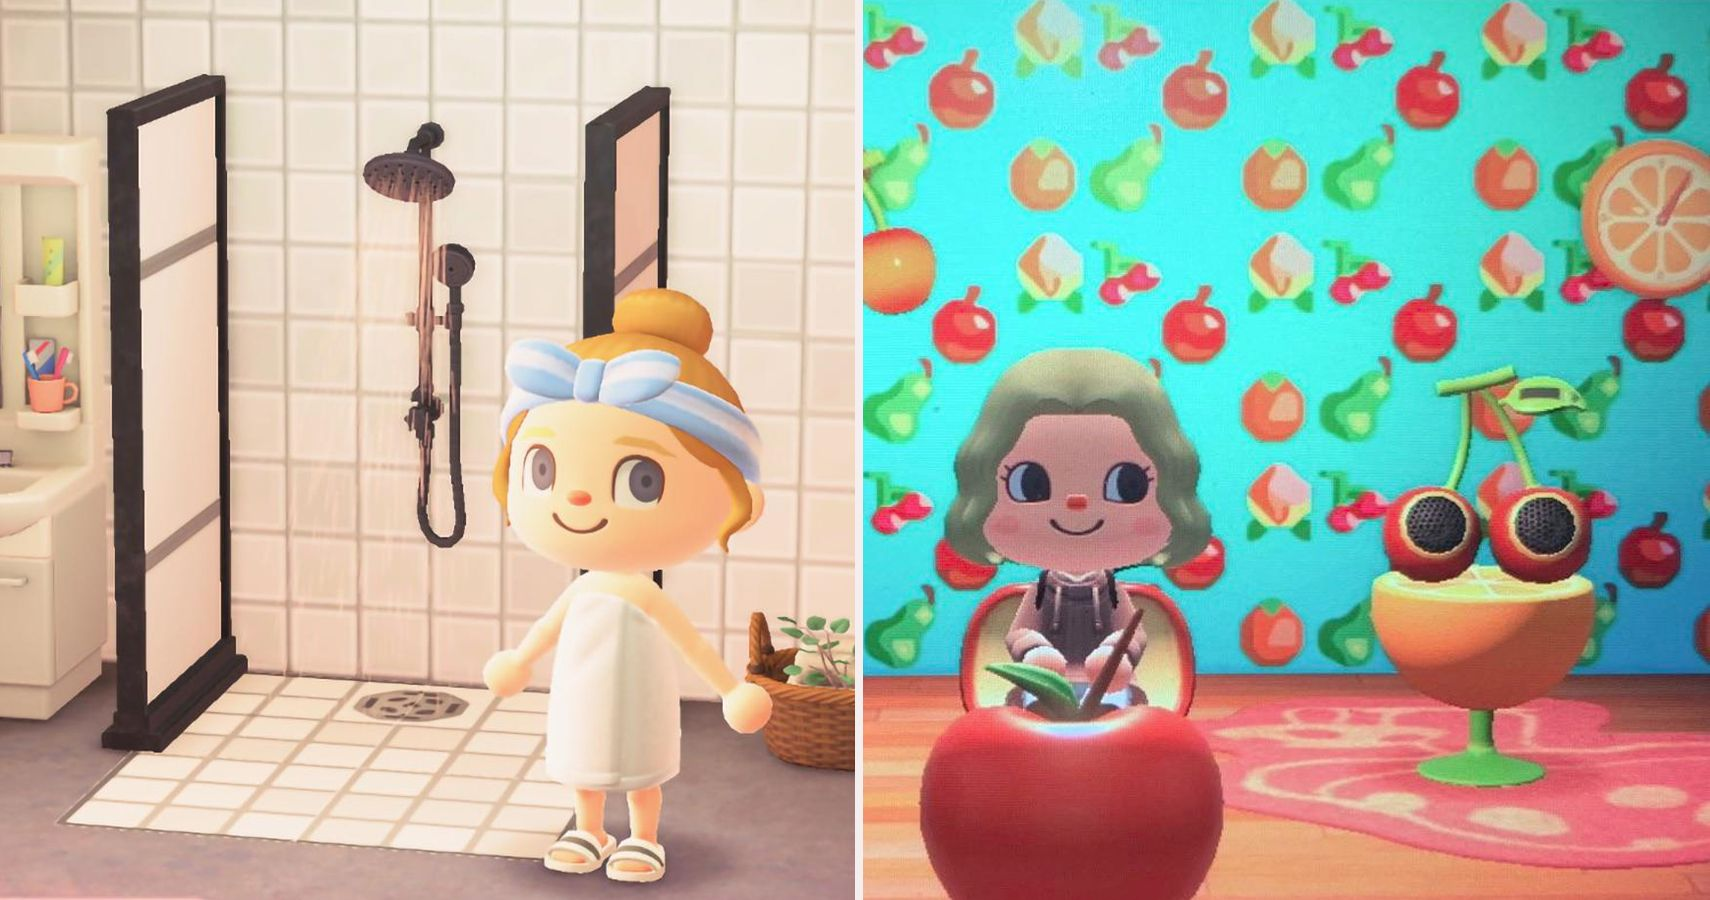 Best Custom Wallpapers In Animal Crossing New Horizons